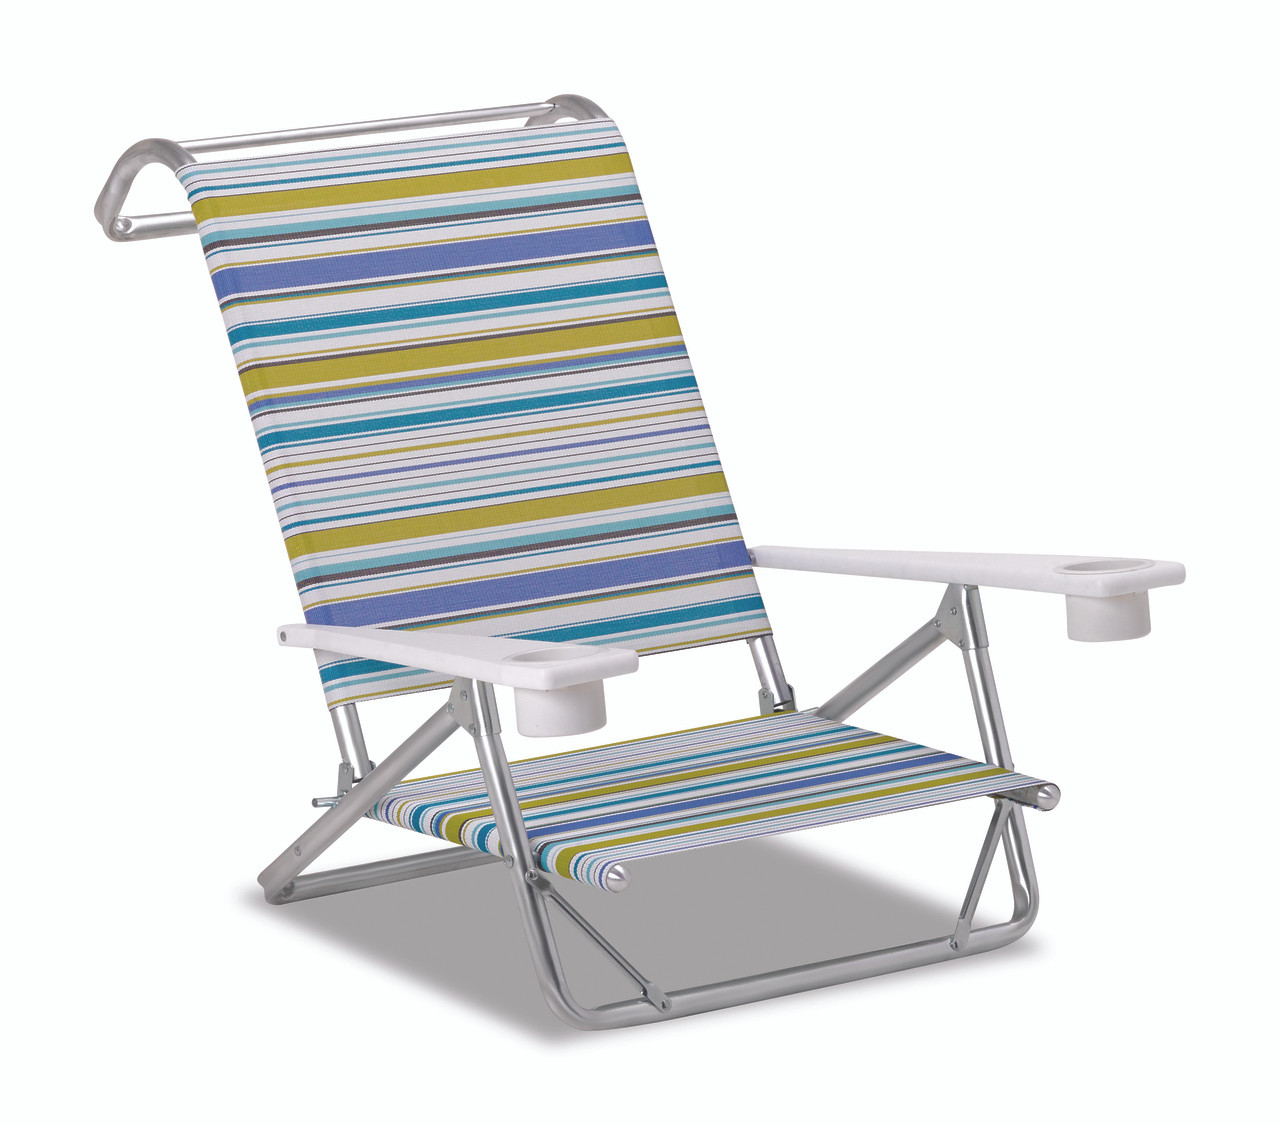 Telescope Beach Chair Telescope Casual Original Min Sun Chaise With Arms Mgp W Cup Holders